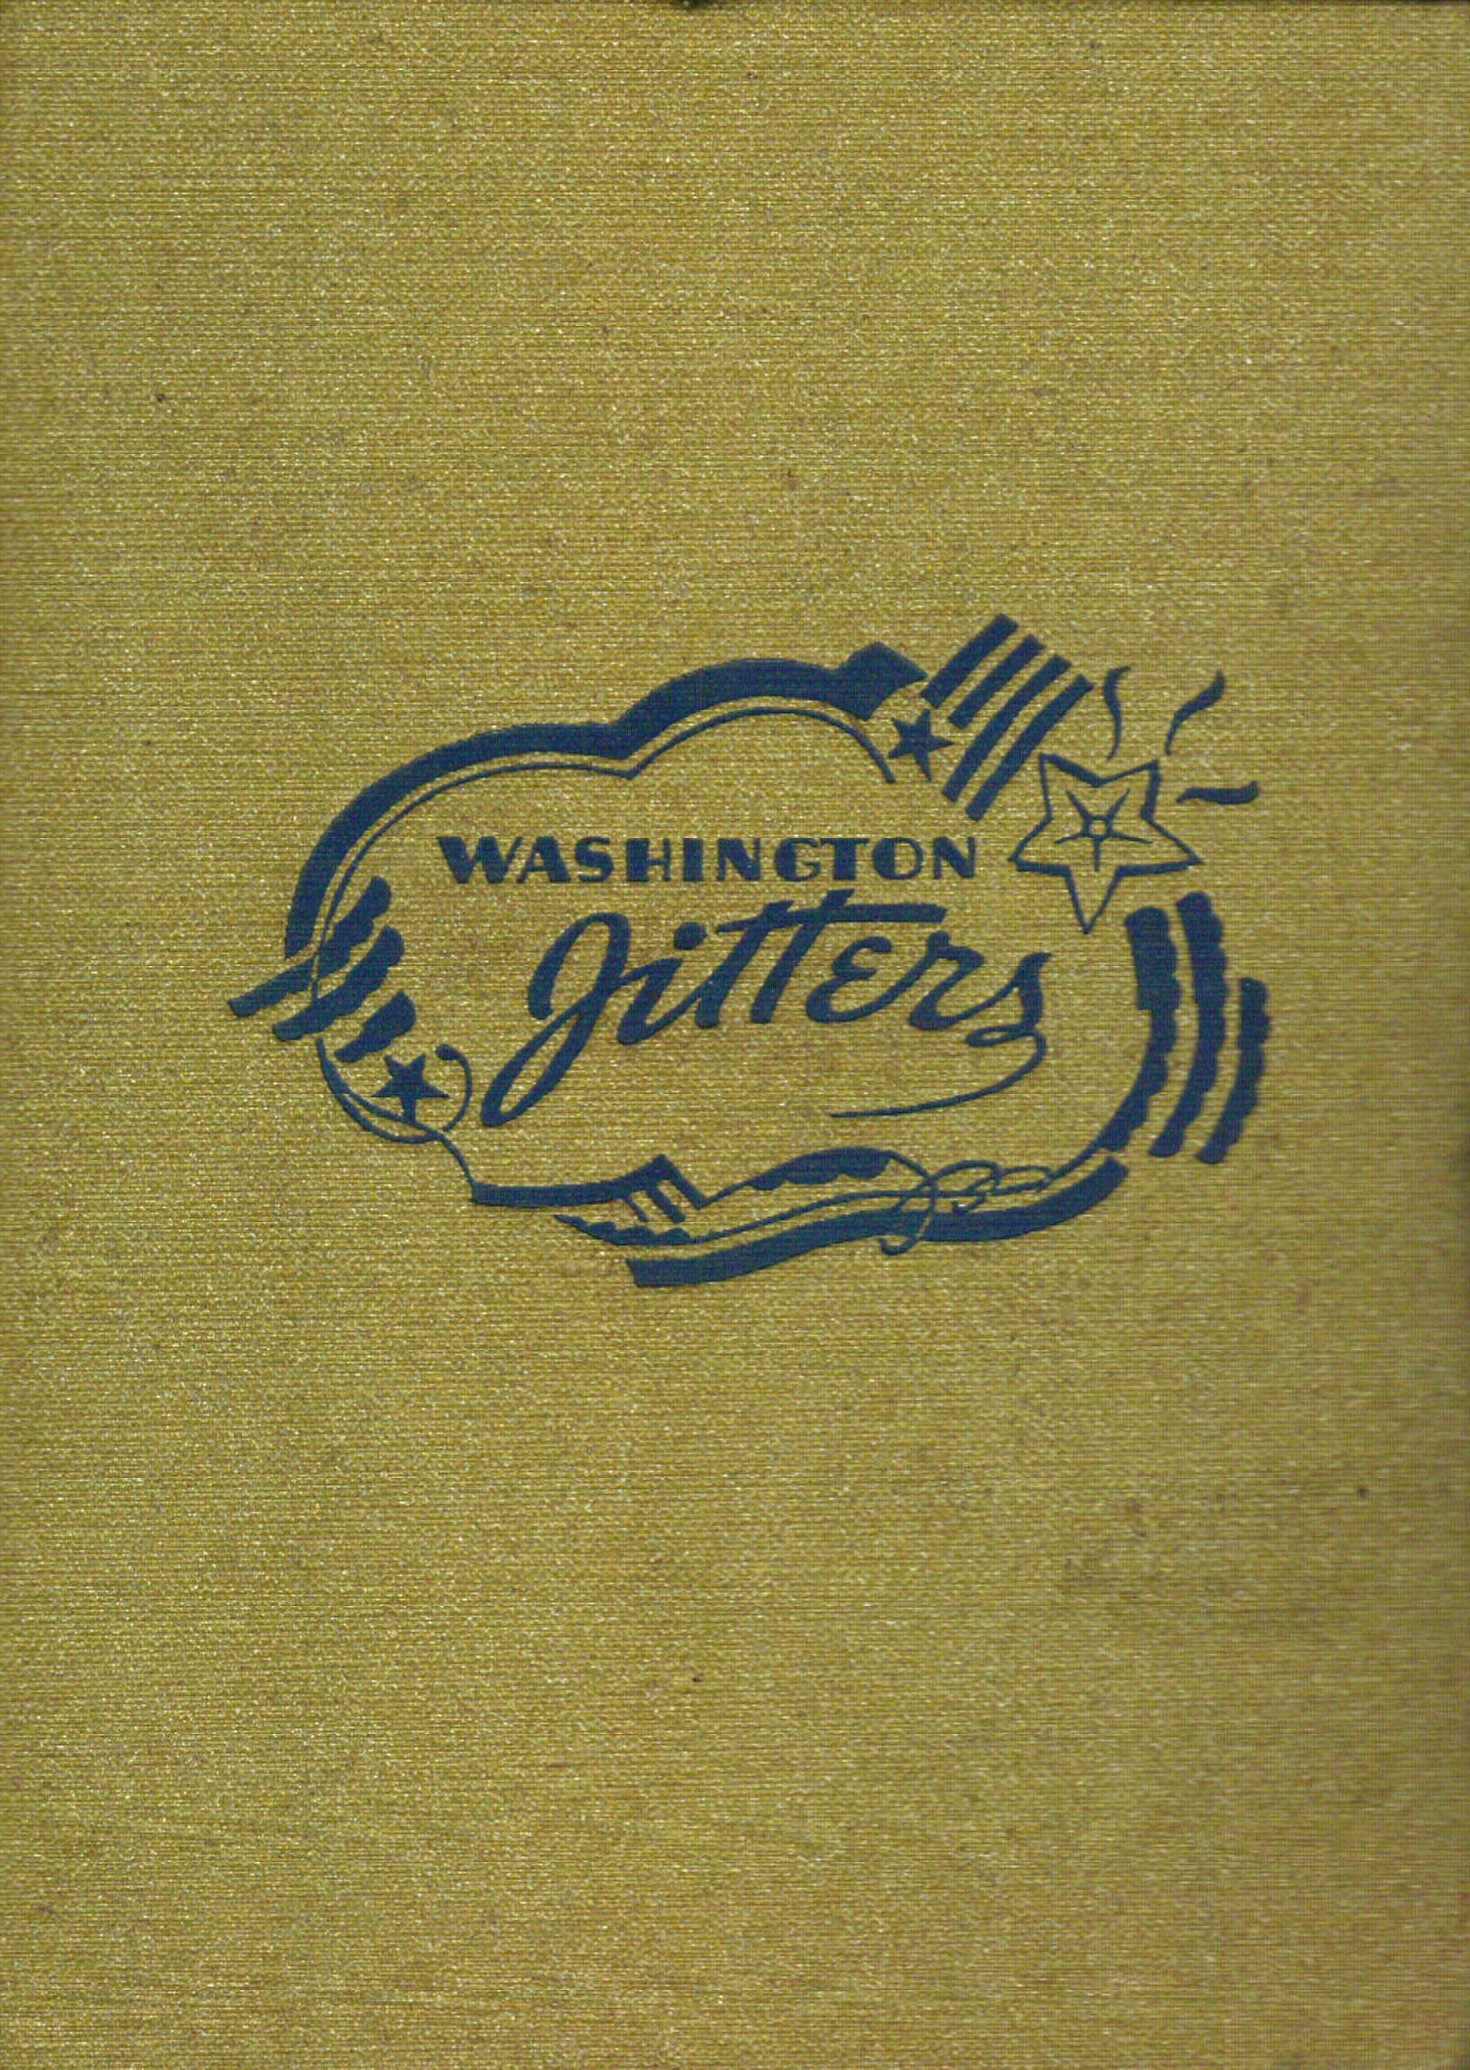 Washington Jitters